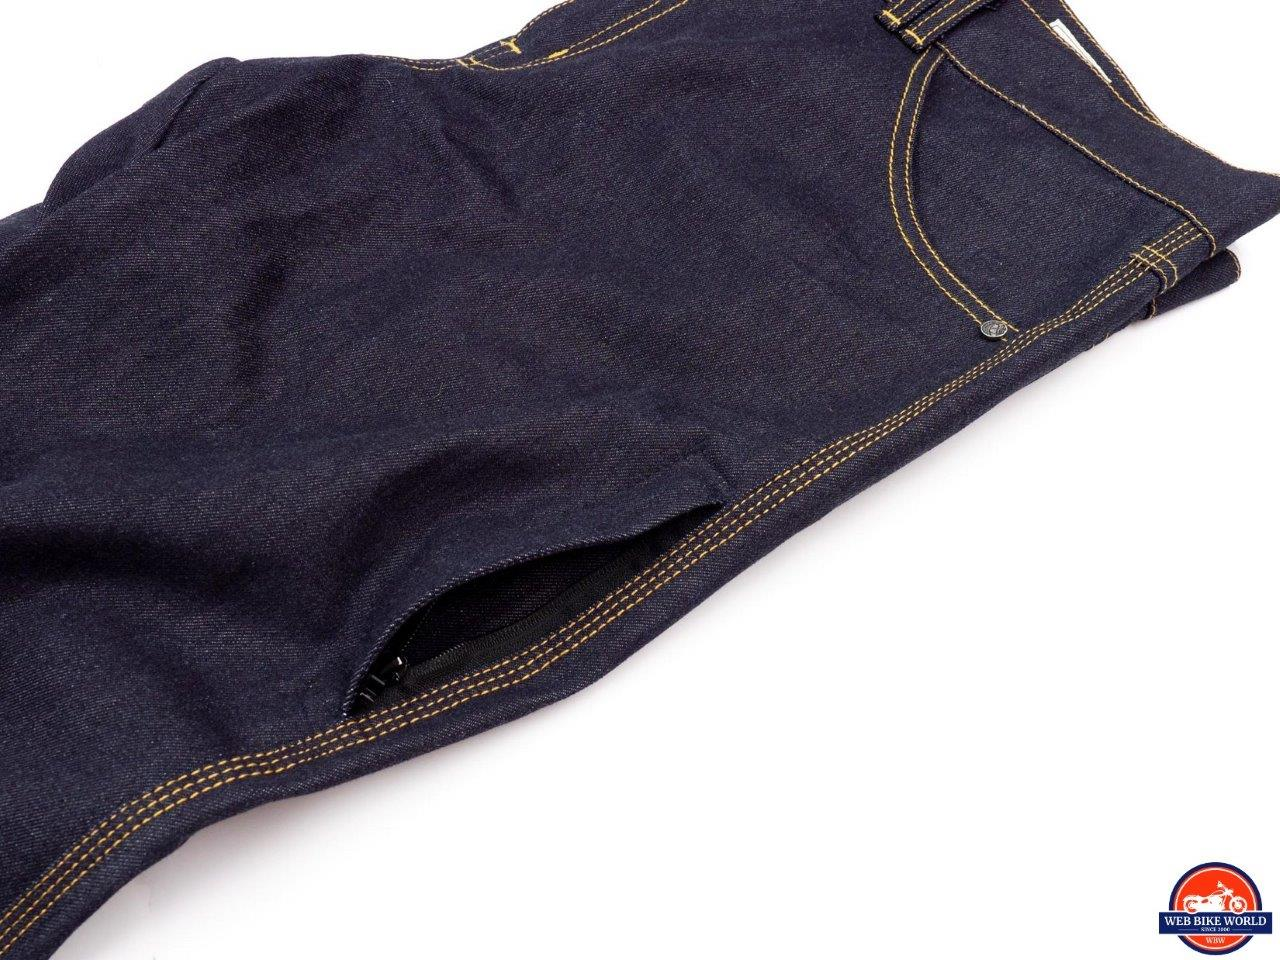 Trilobite Go-Up Jeans pockets